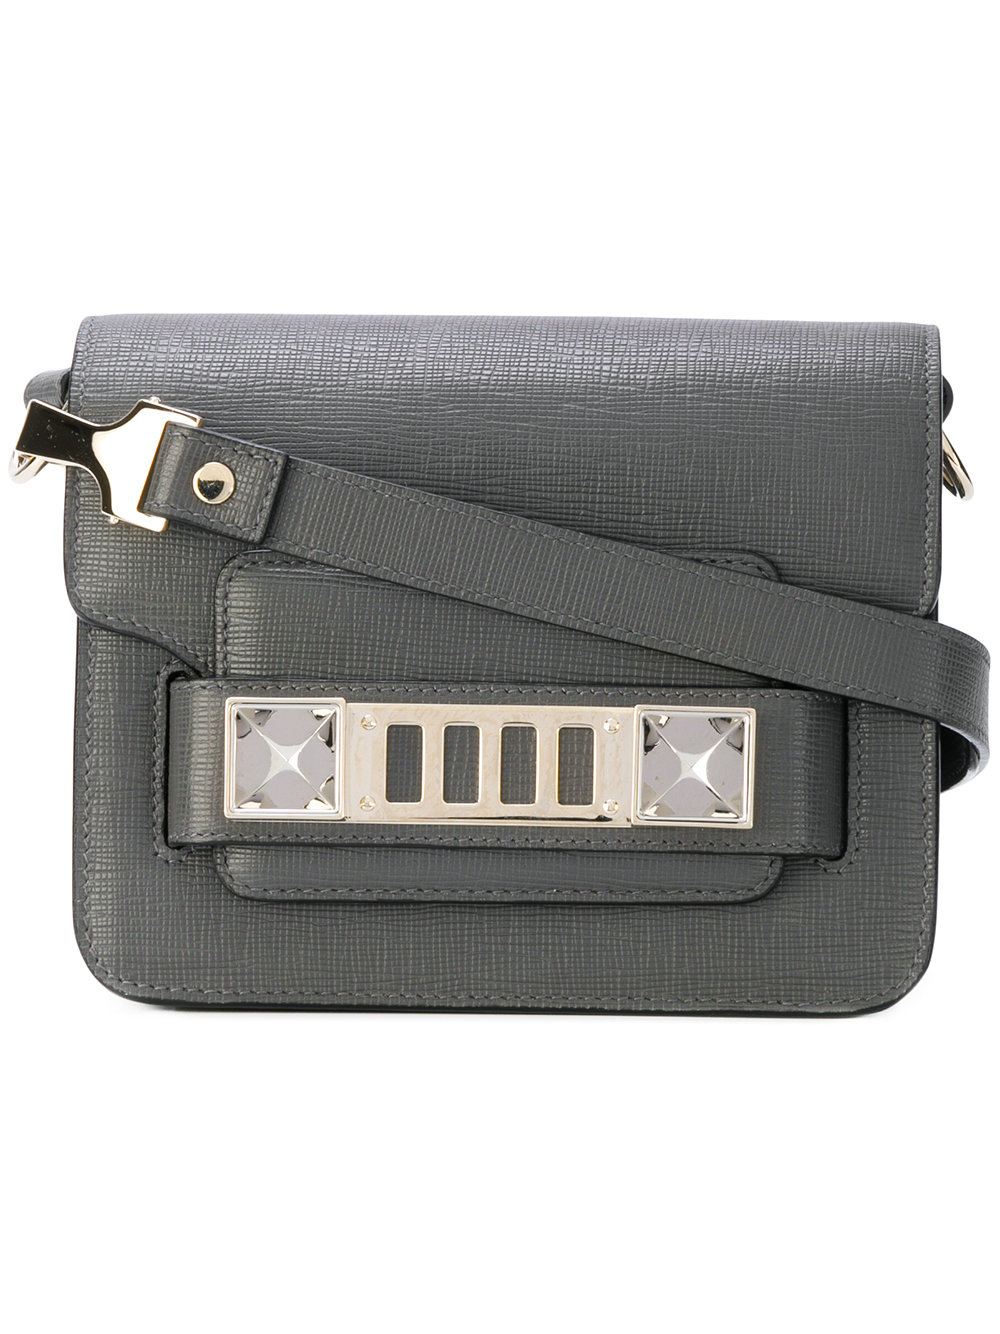 Proenza Schouler PS11 CROSSBODY